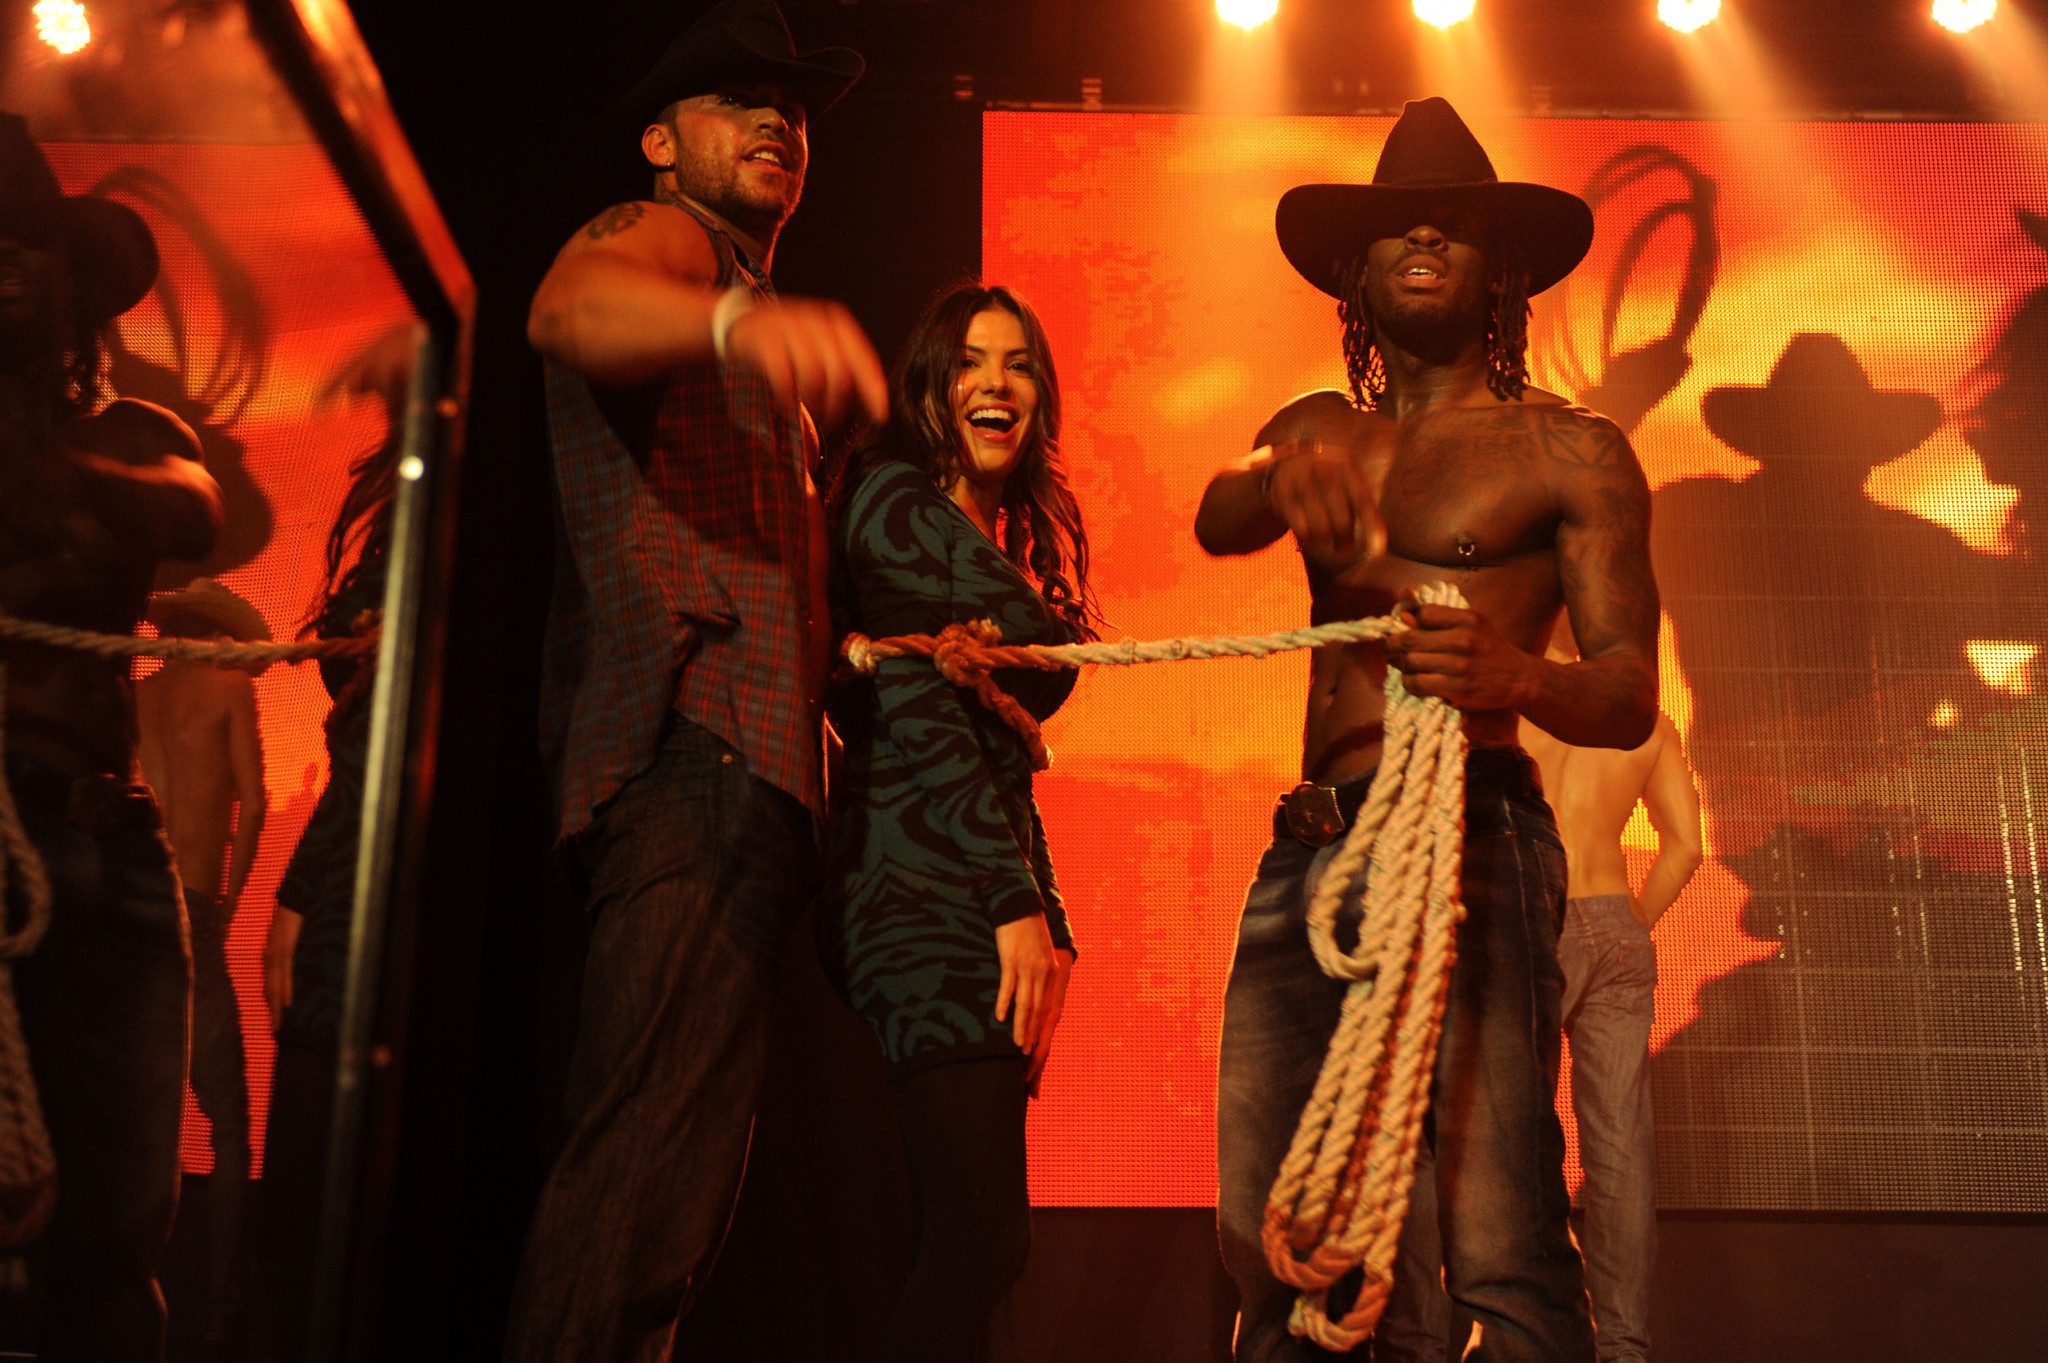 Chippendales open in Miami Beach - Adriana De Moura and Chippendales